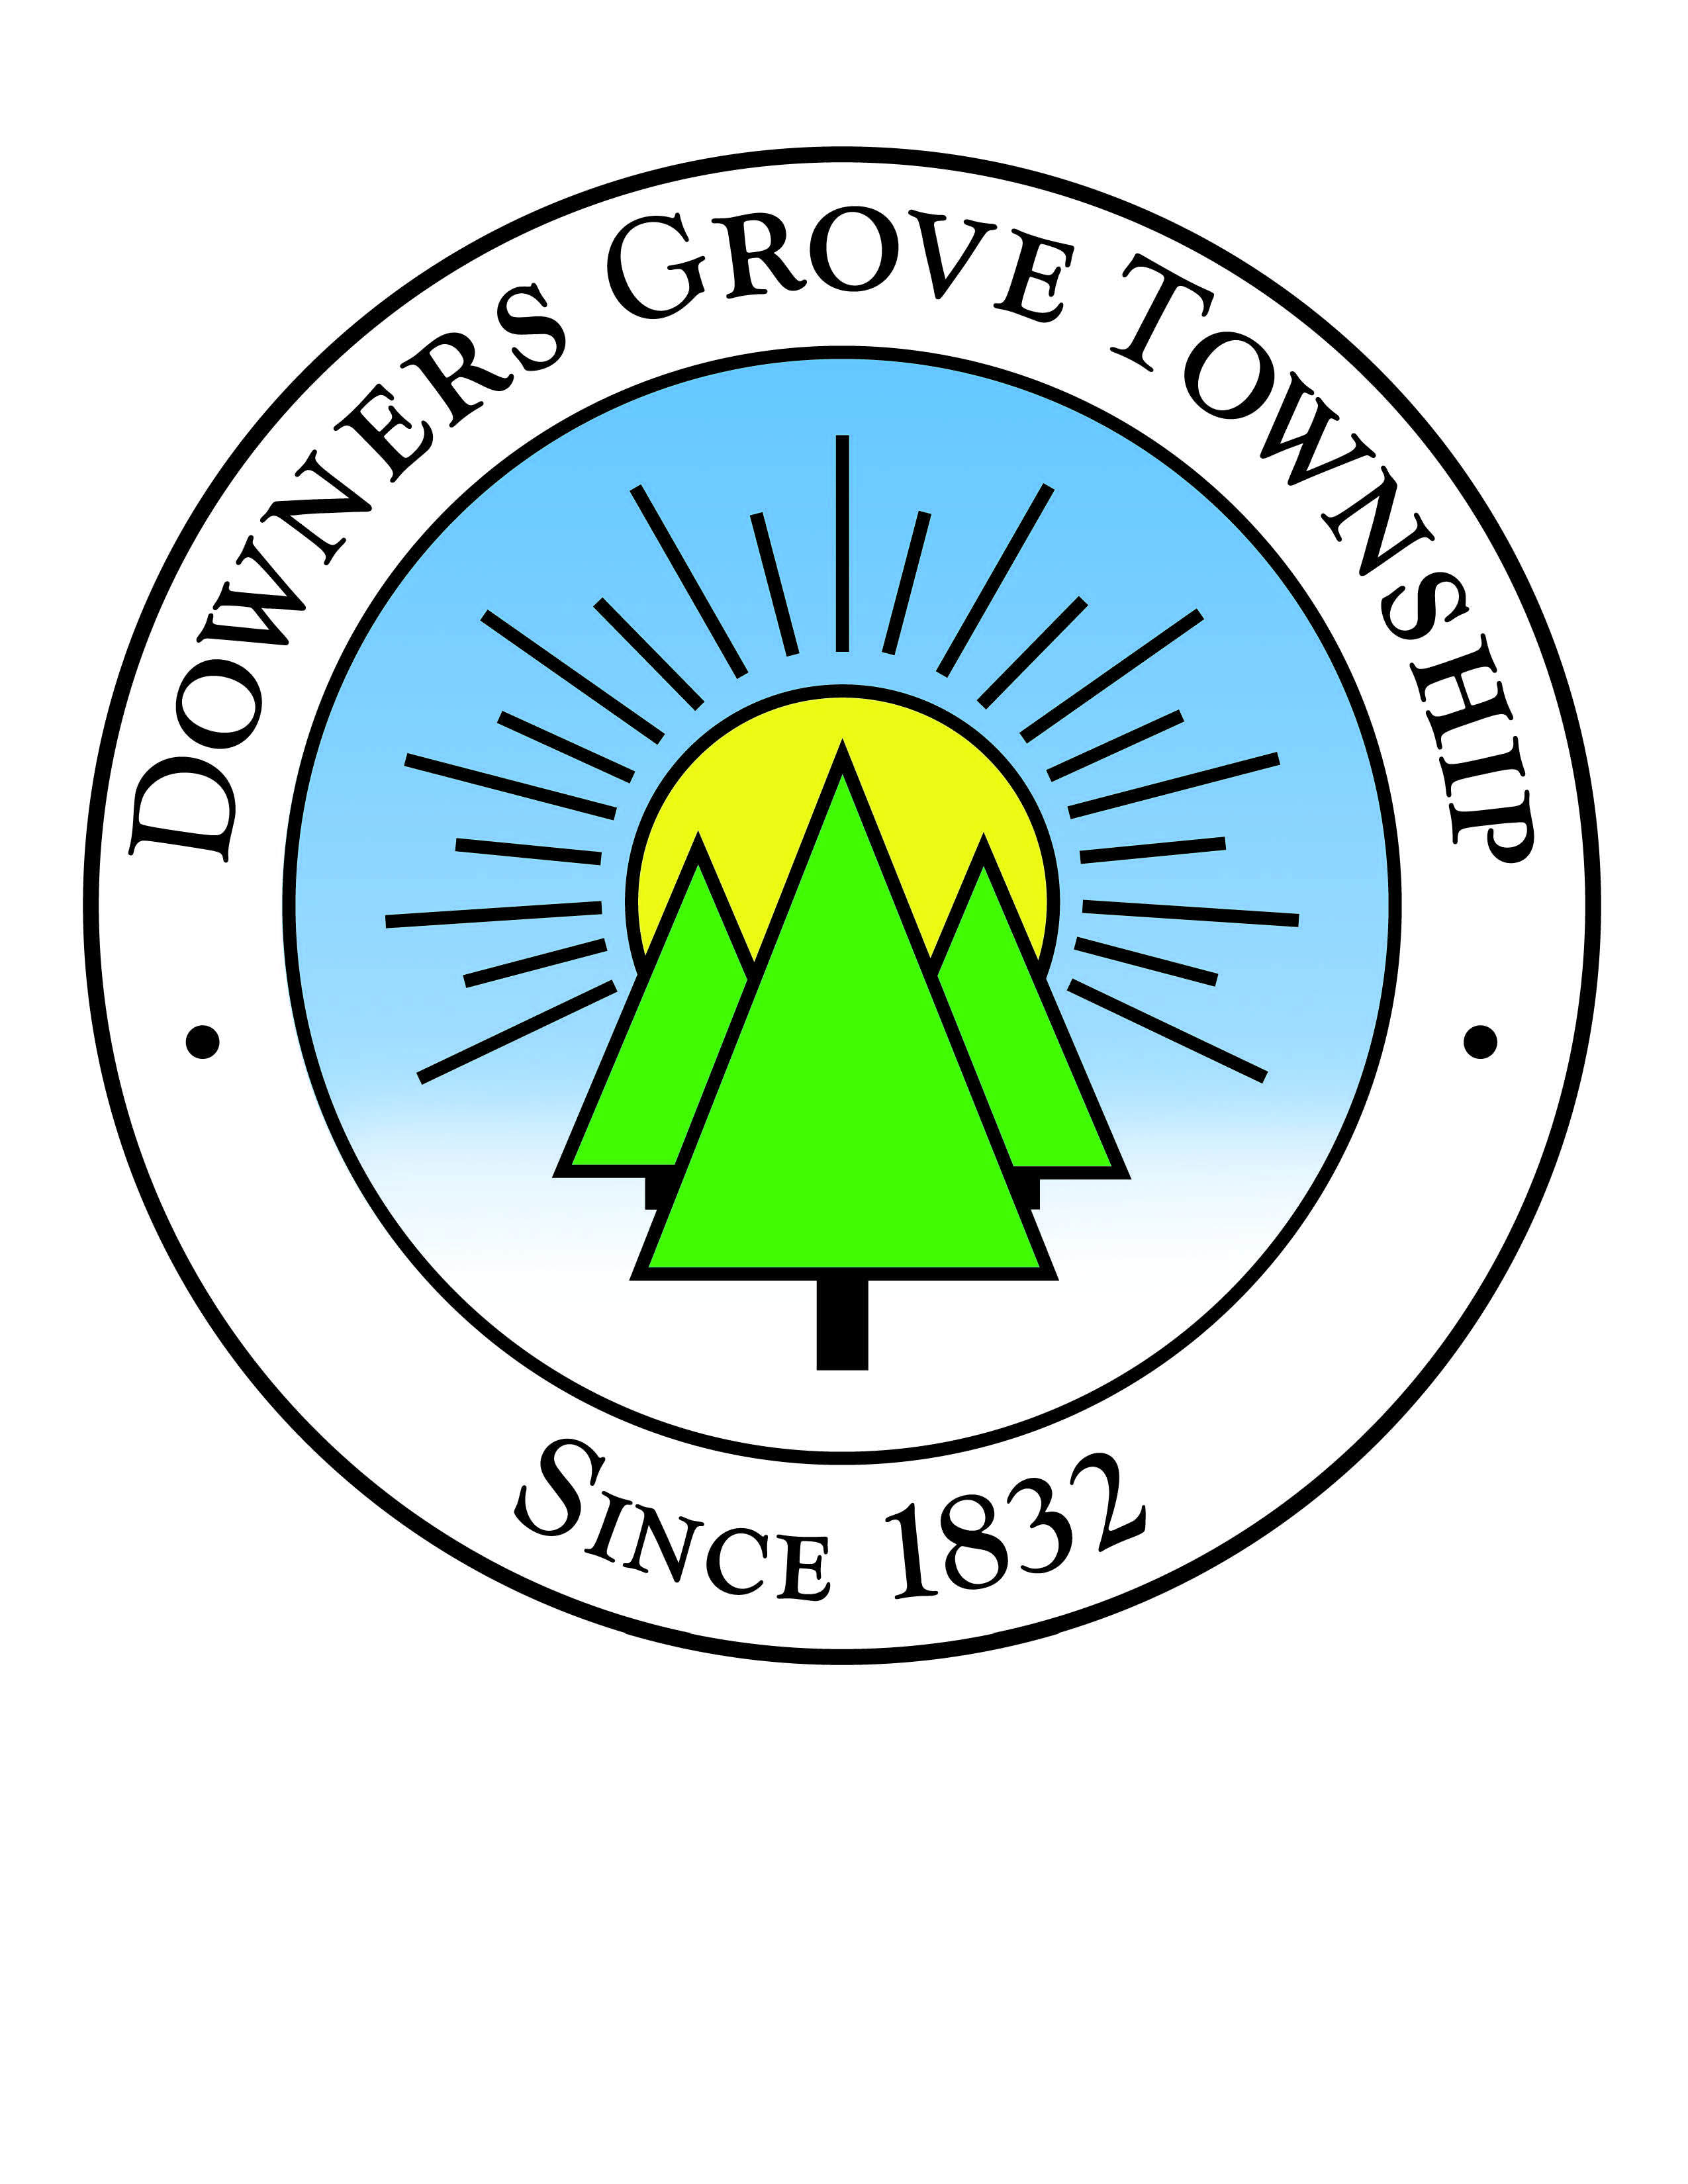 Unincorporated Downers Grove Township